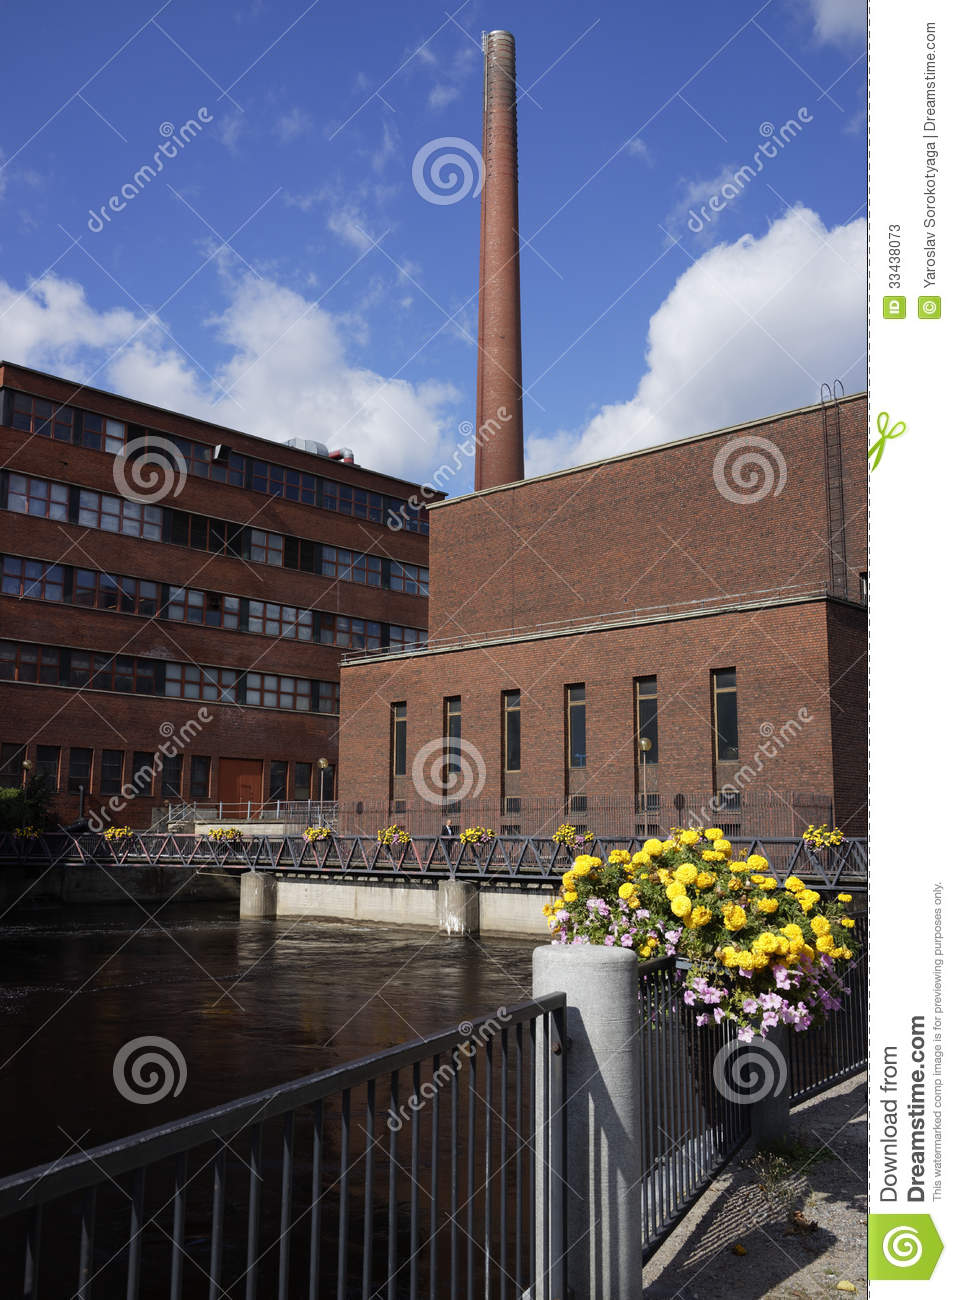 Arquitectura industrial en tampere fotos de archivo for Arquitectura industrial